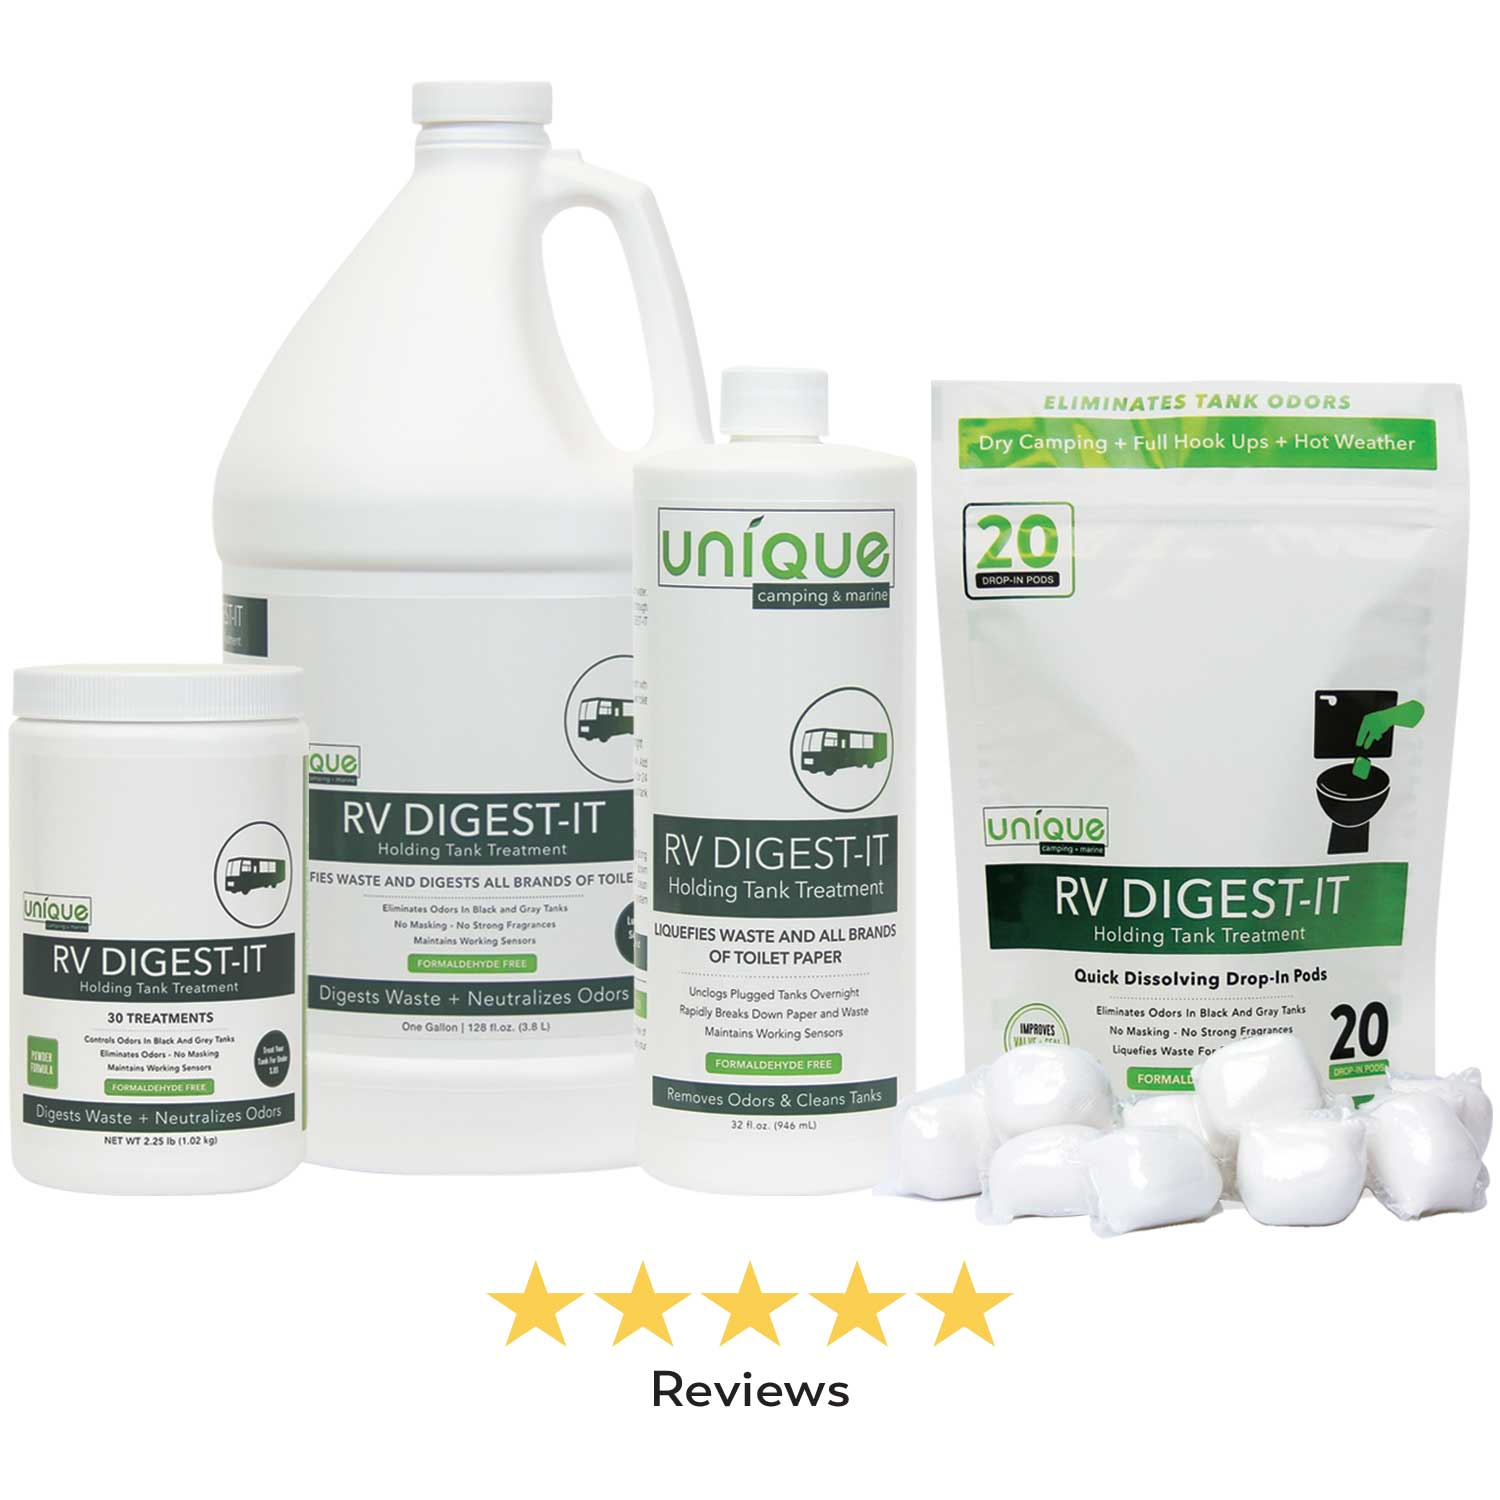 RV Digest-it is the most widely used independent tank treatment. Made for full time RVing